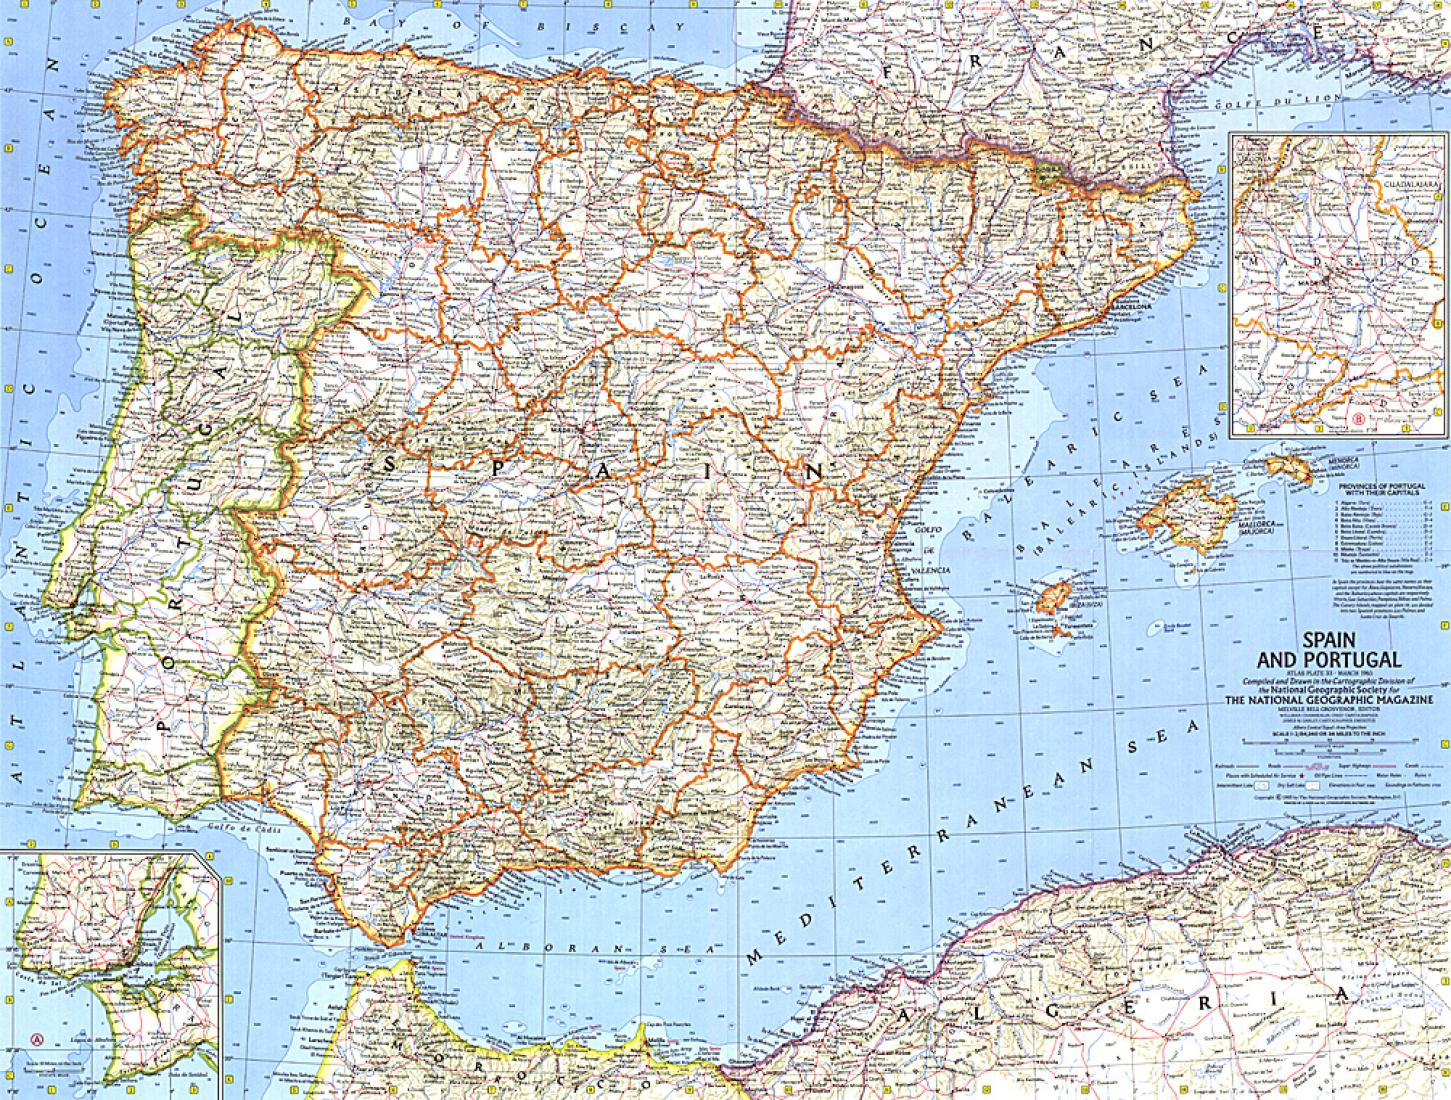 Map Of Portugal And Spain Detailed.1965 Spain And Portugal By National Geographic Maps